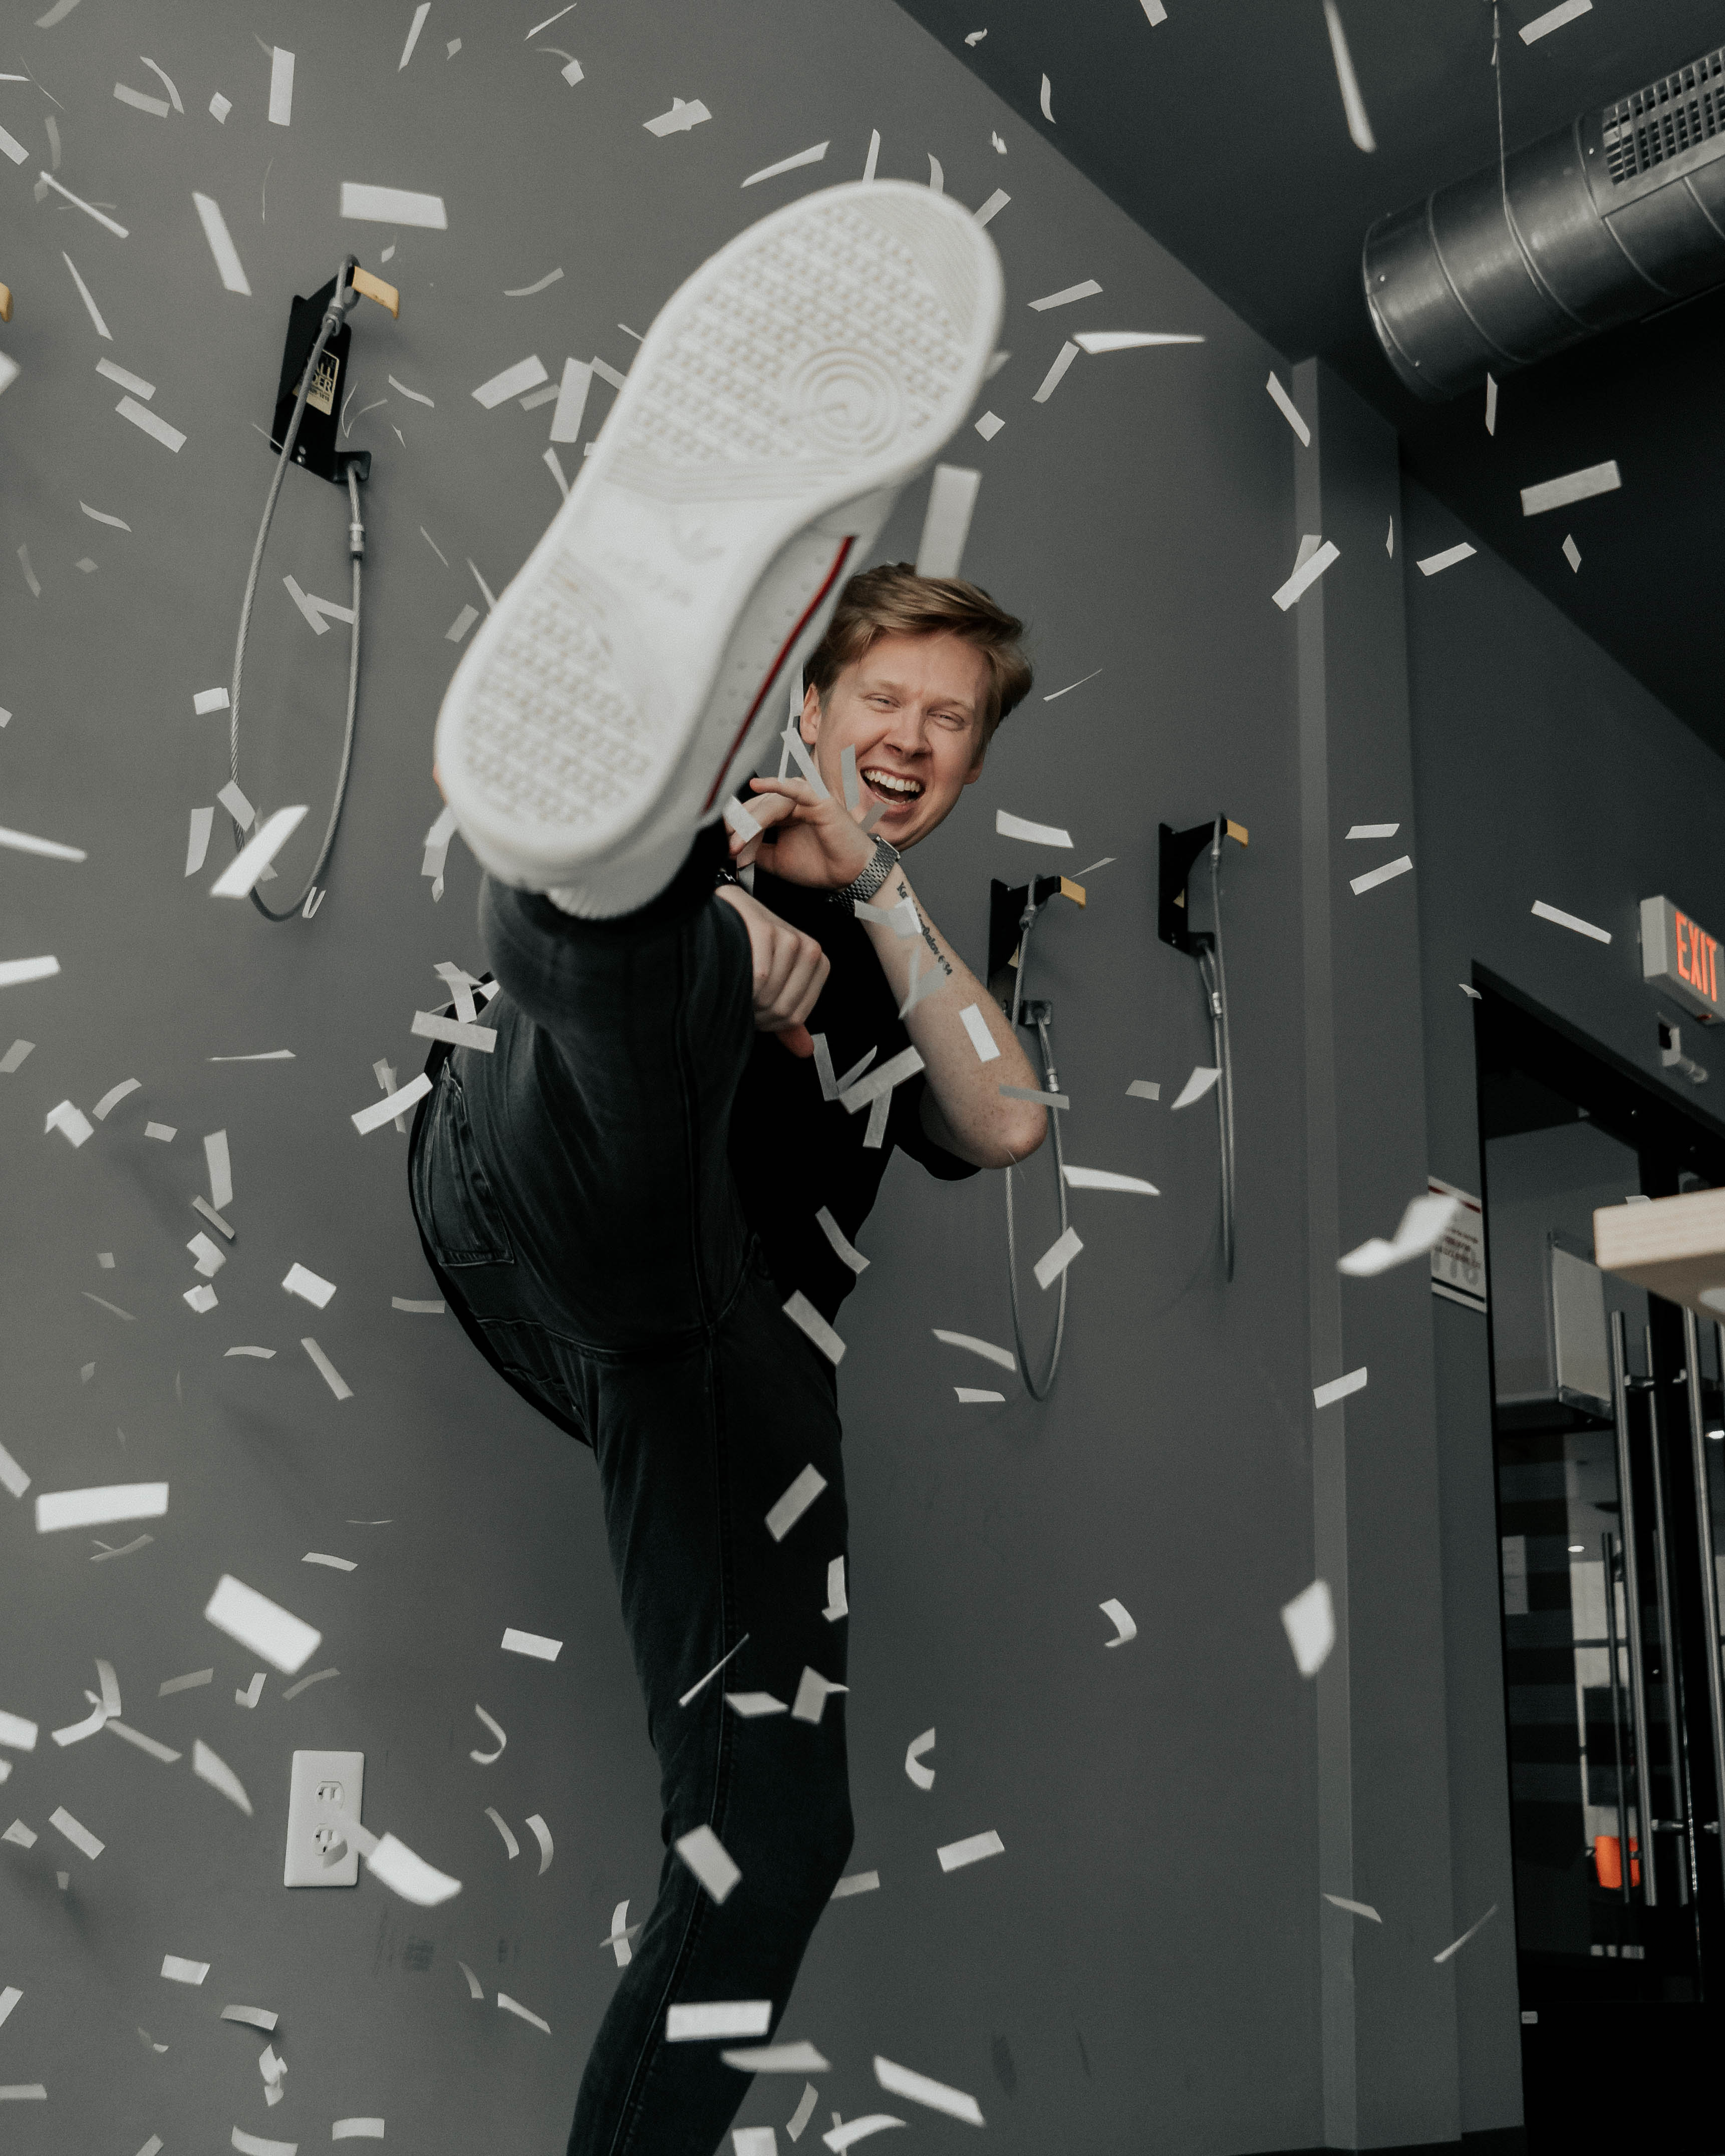 Blair Hoover, Co-Founder and web designer for Hoover Collective kicking confetti